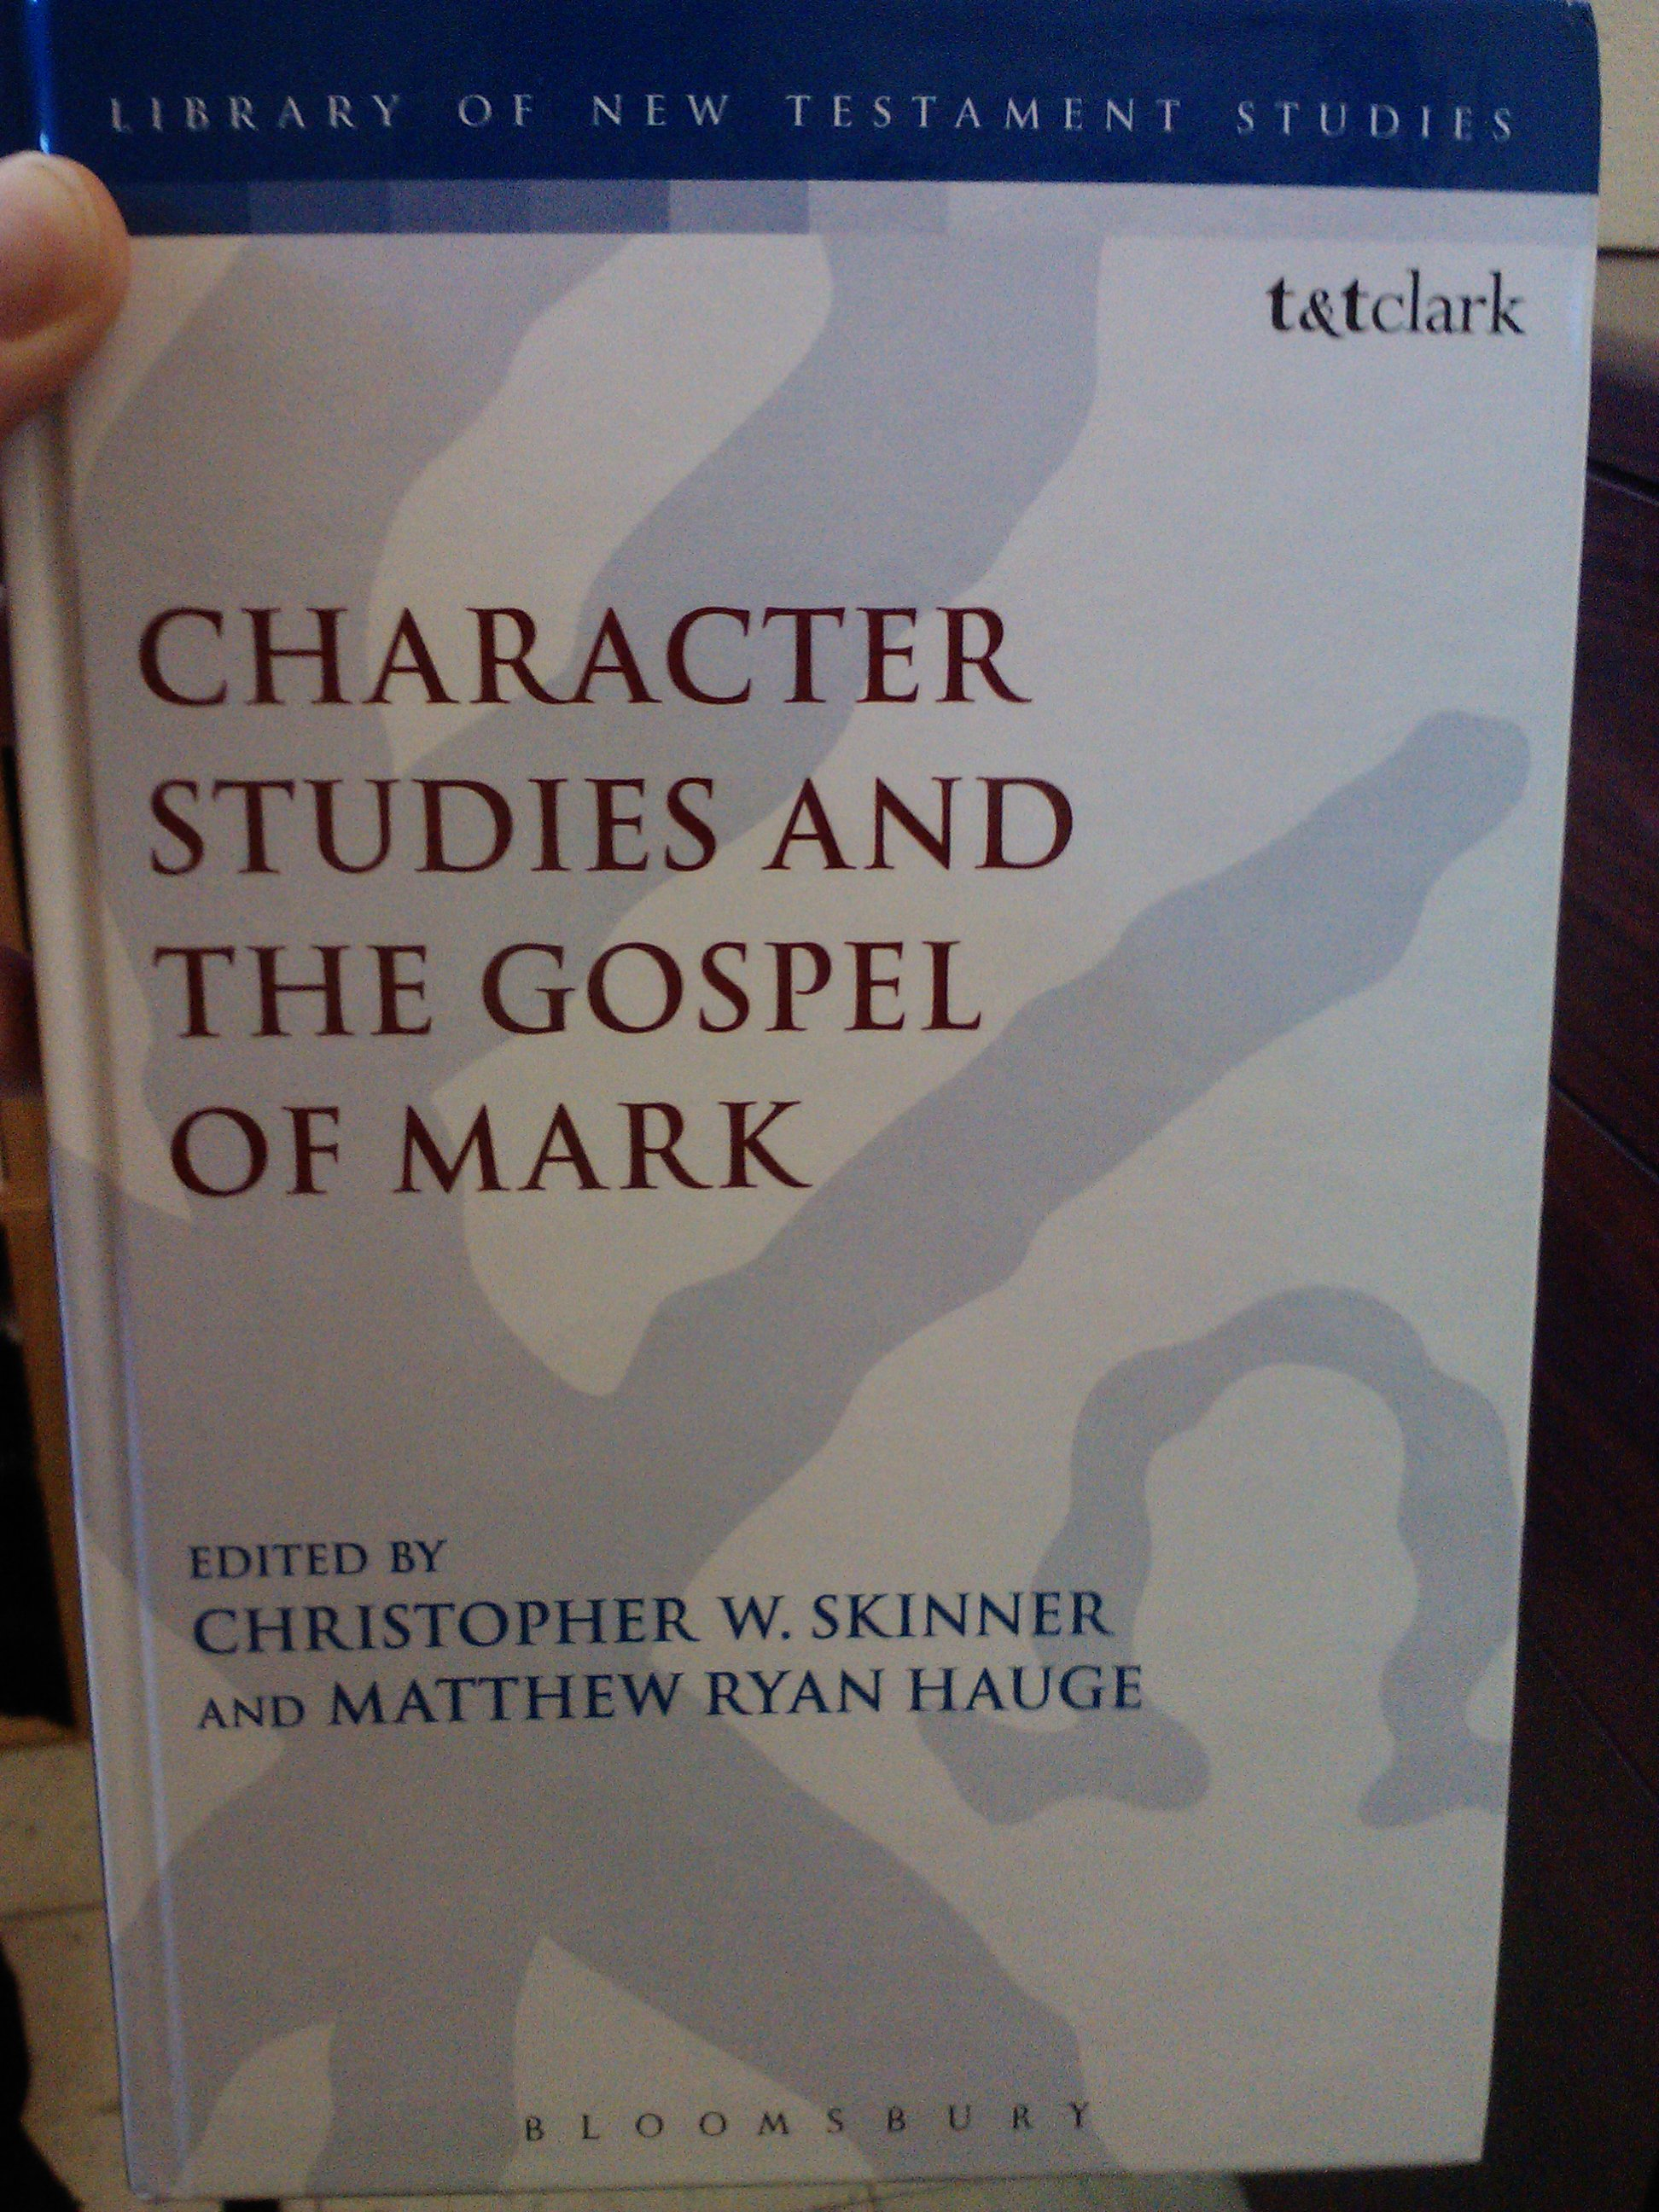 the lottery and the gospel of mark essay Borges' the gospel according to mark has a plot related to misunderstanding the story is about a man taking in an illiterate worker and his family after a storm drives them from their home putting them up in a tool shed, he entertains them at night with stories of the gospel's of mark.